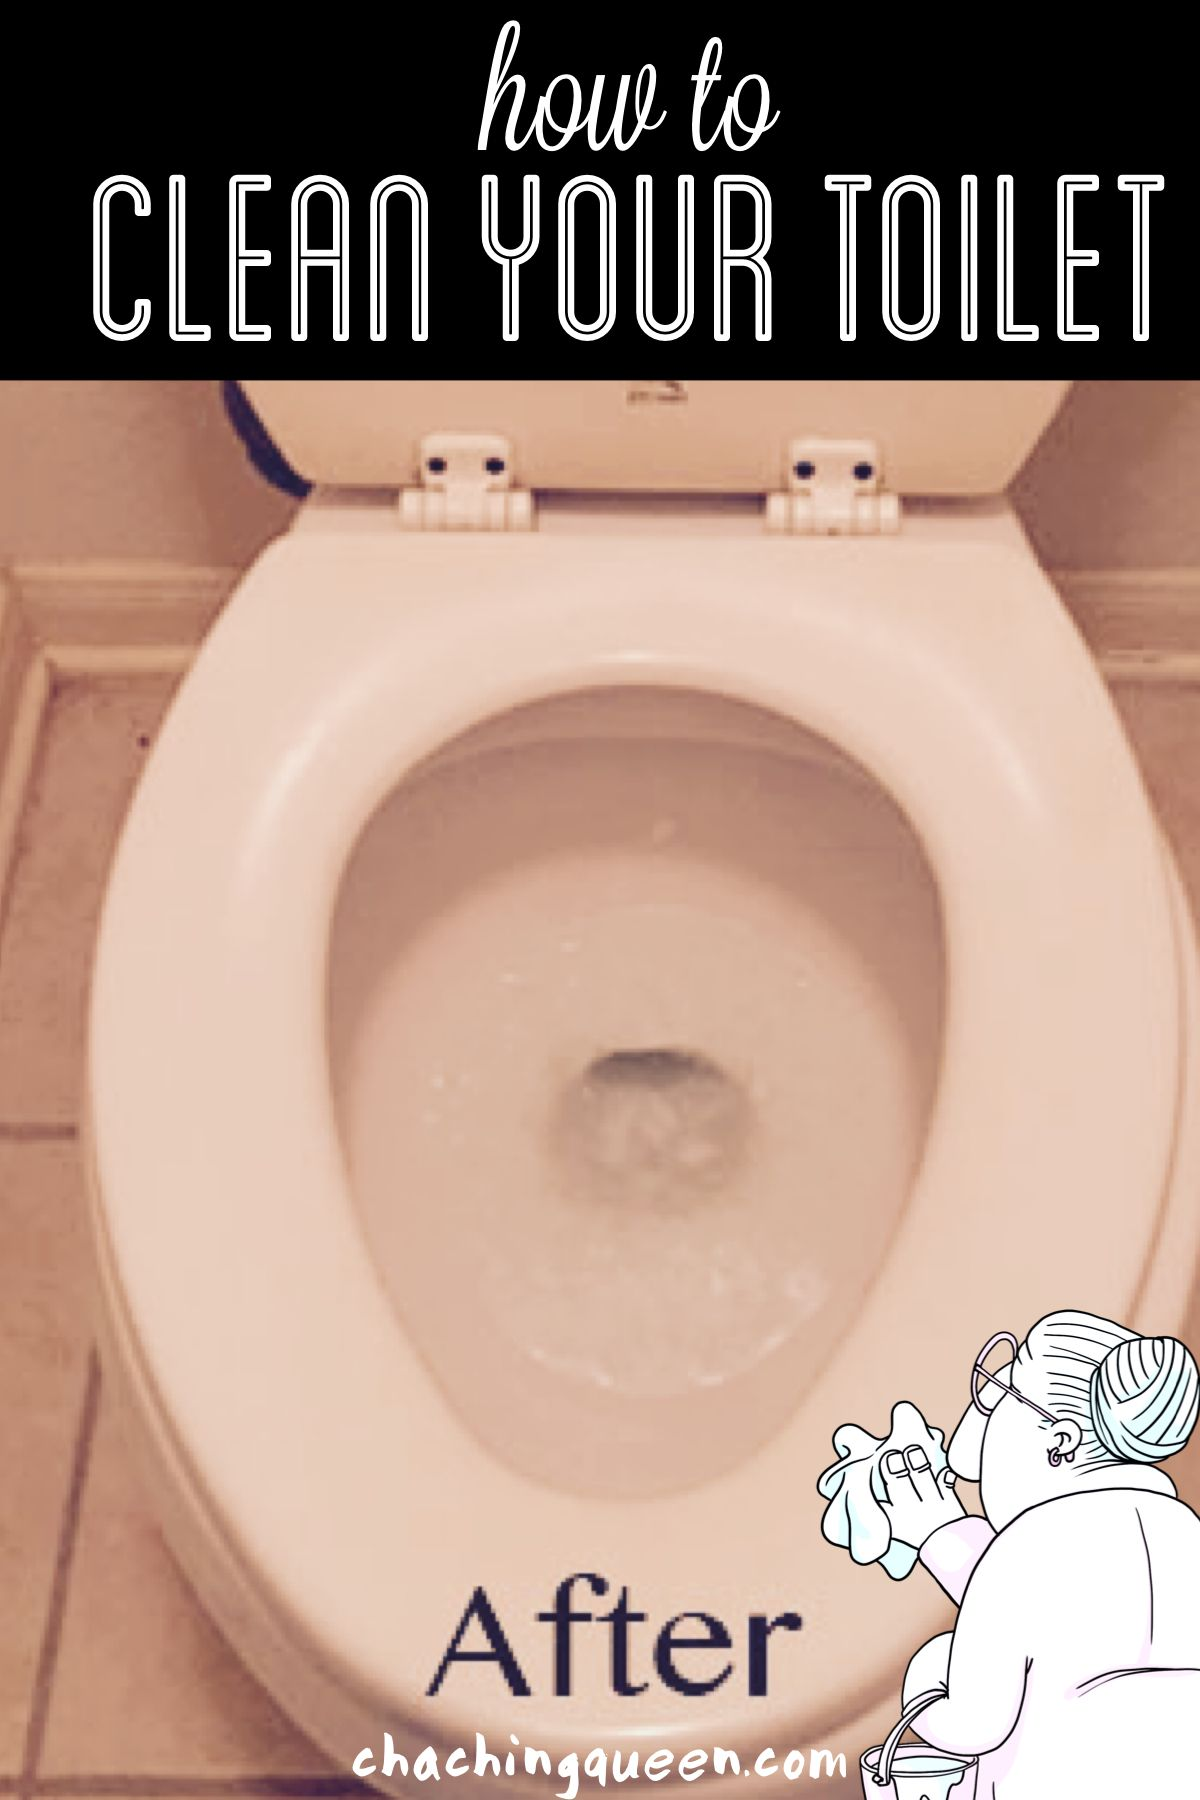 How To Clean A Toilet And How To Remove Hard Water Stains Toilet Cleaning Cleaning Hacks Hard Water Stain Remover